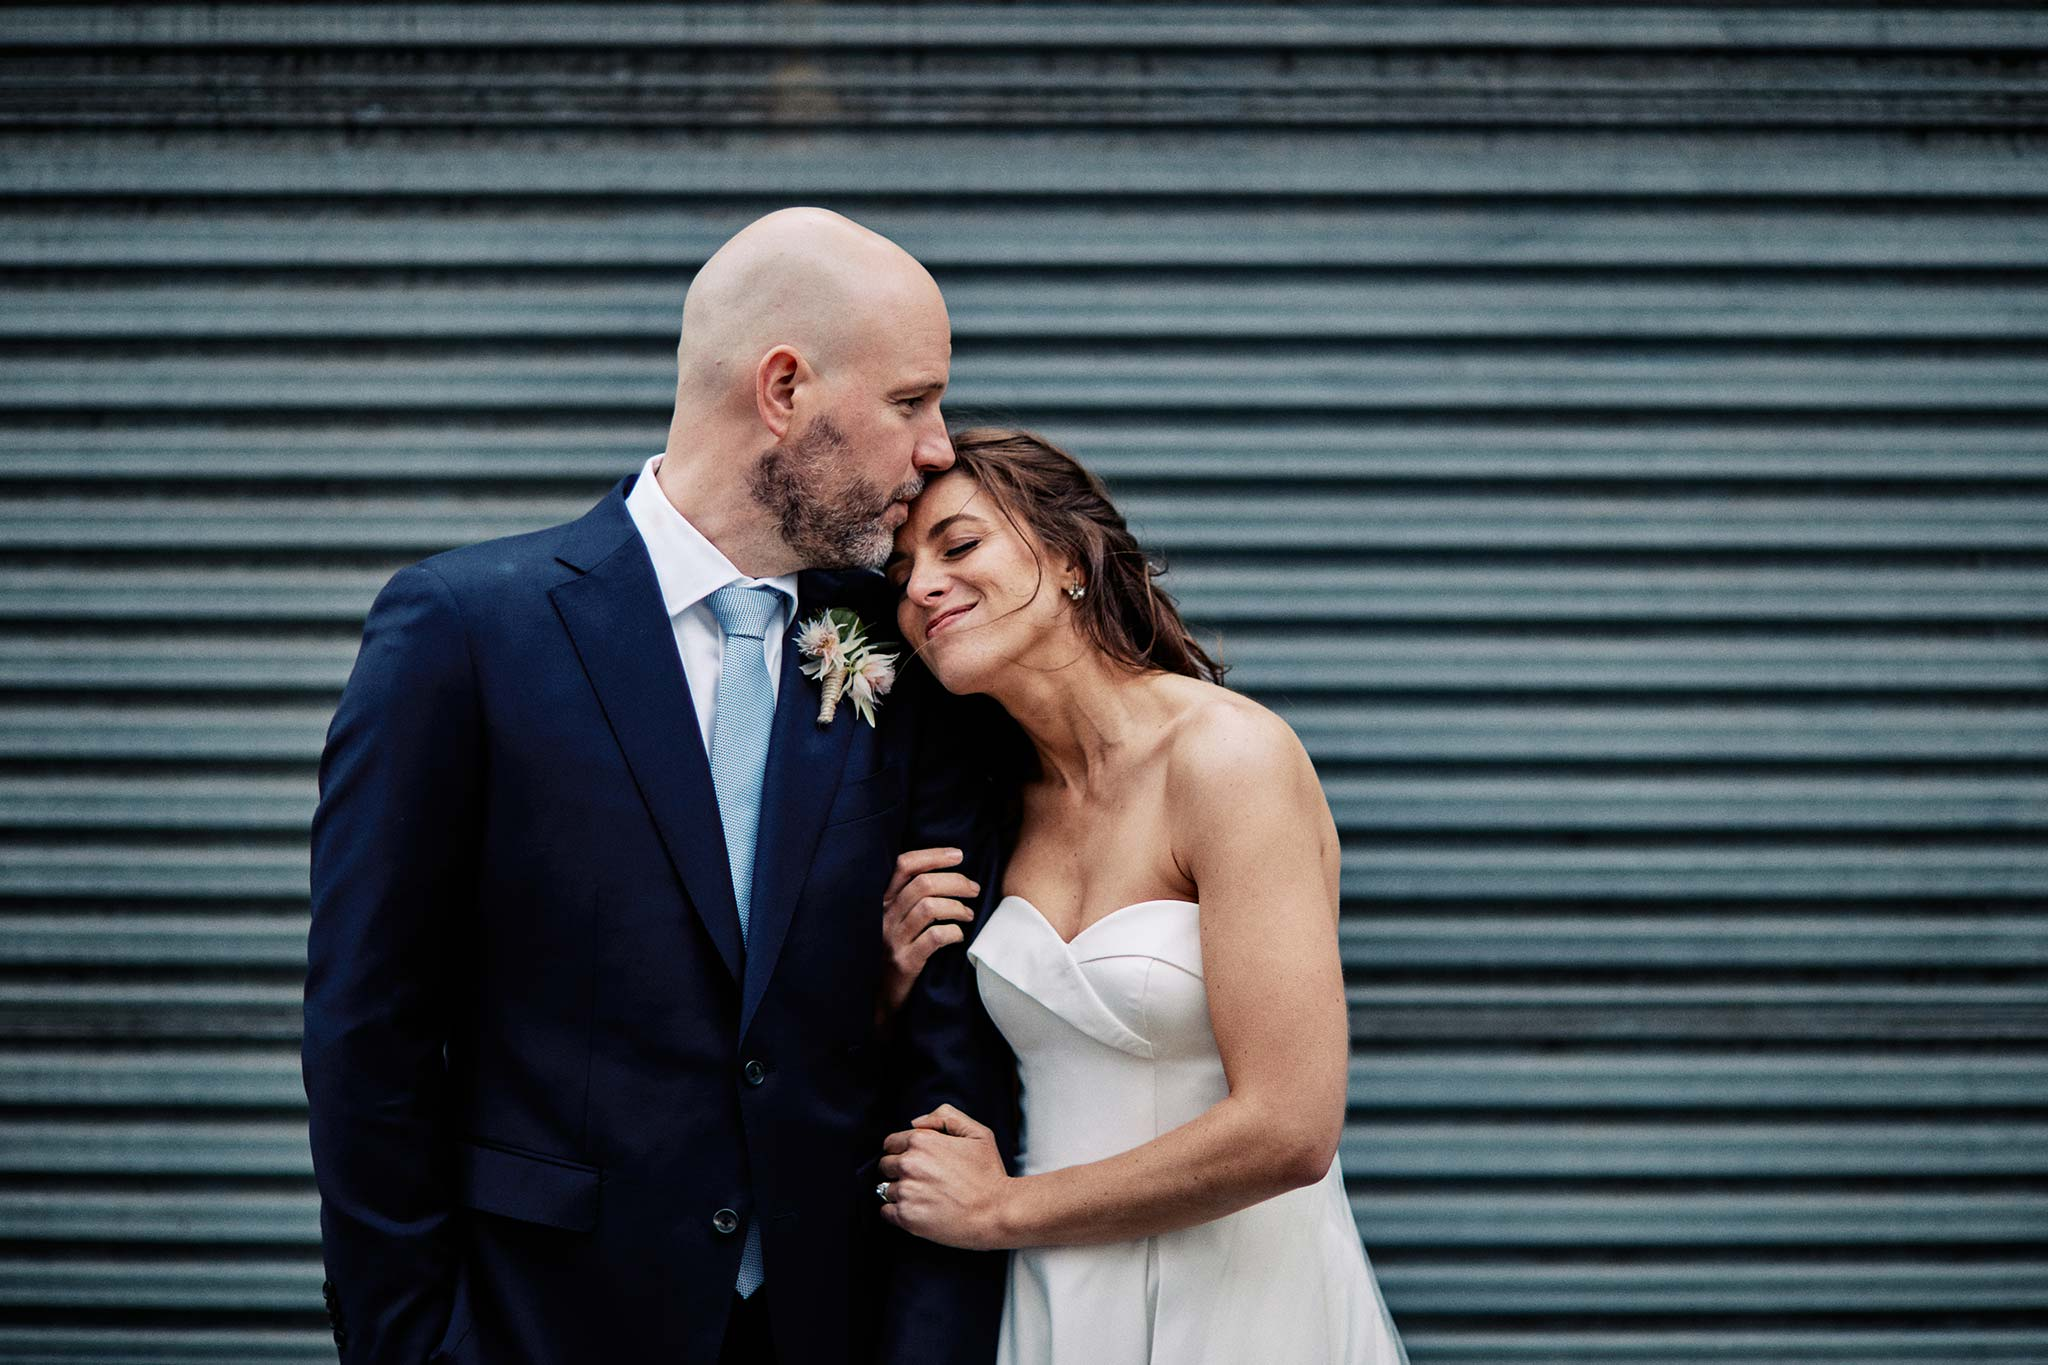 East Melbourne Wedding Photographer Bride Groom embrace rustic backdrop